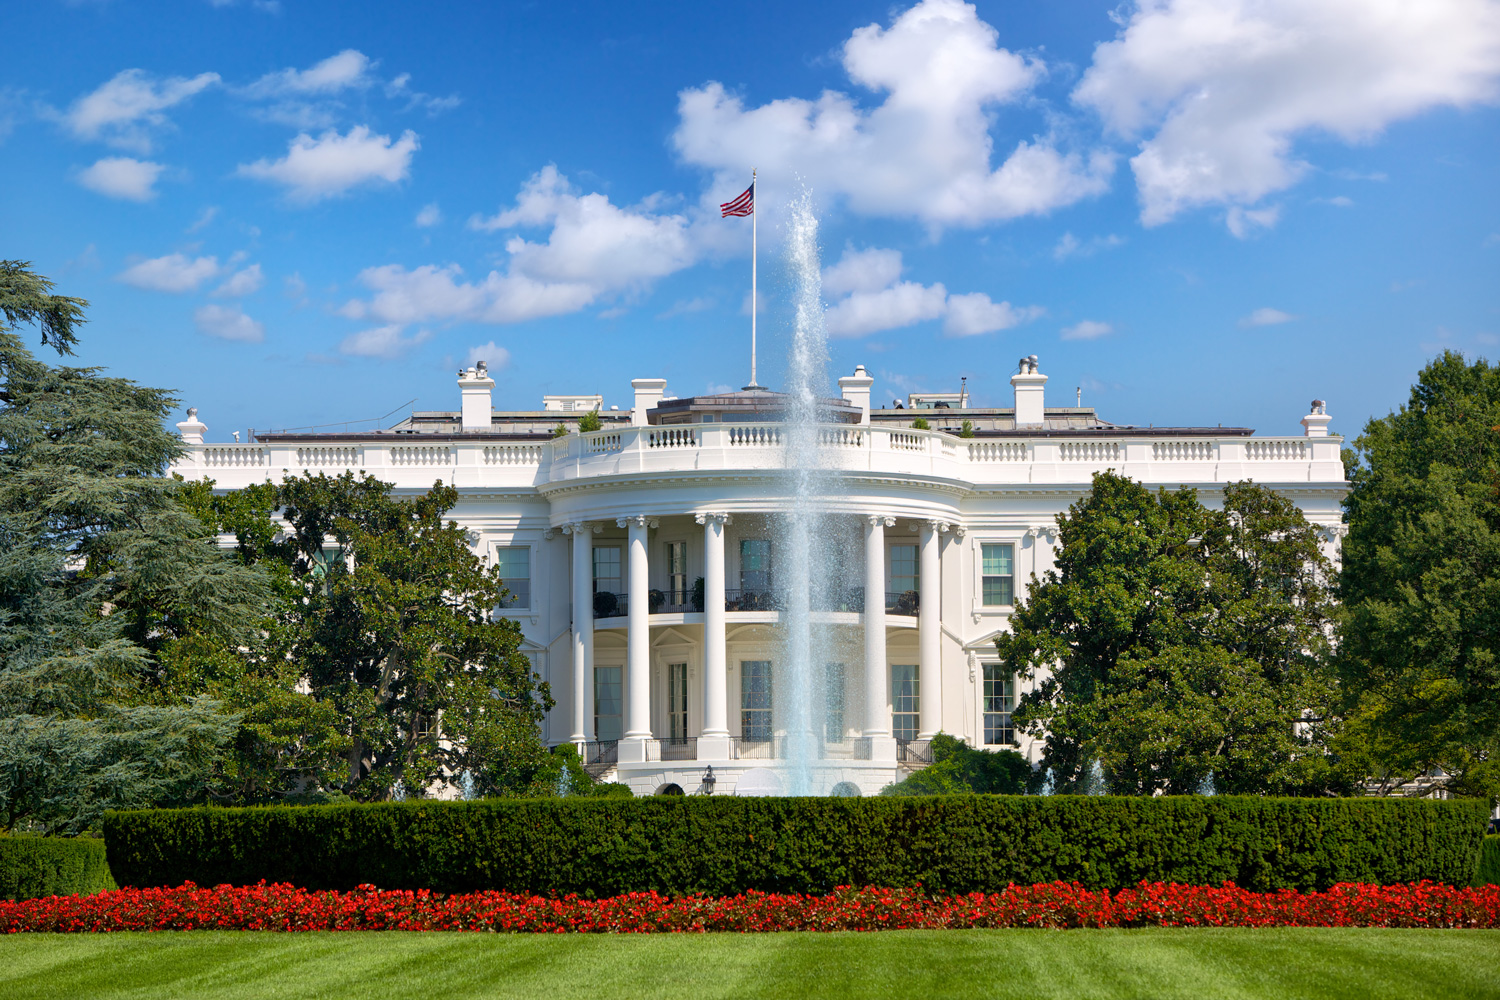 Only emojis were used to create this real estate listing for the White House